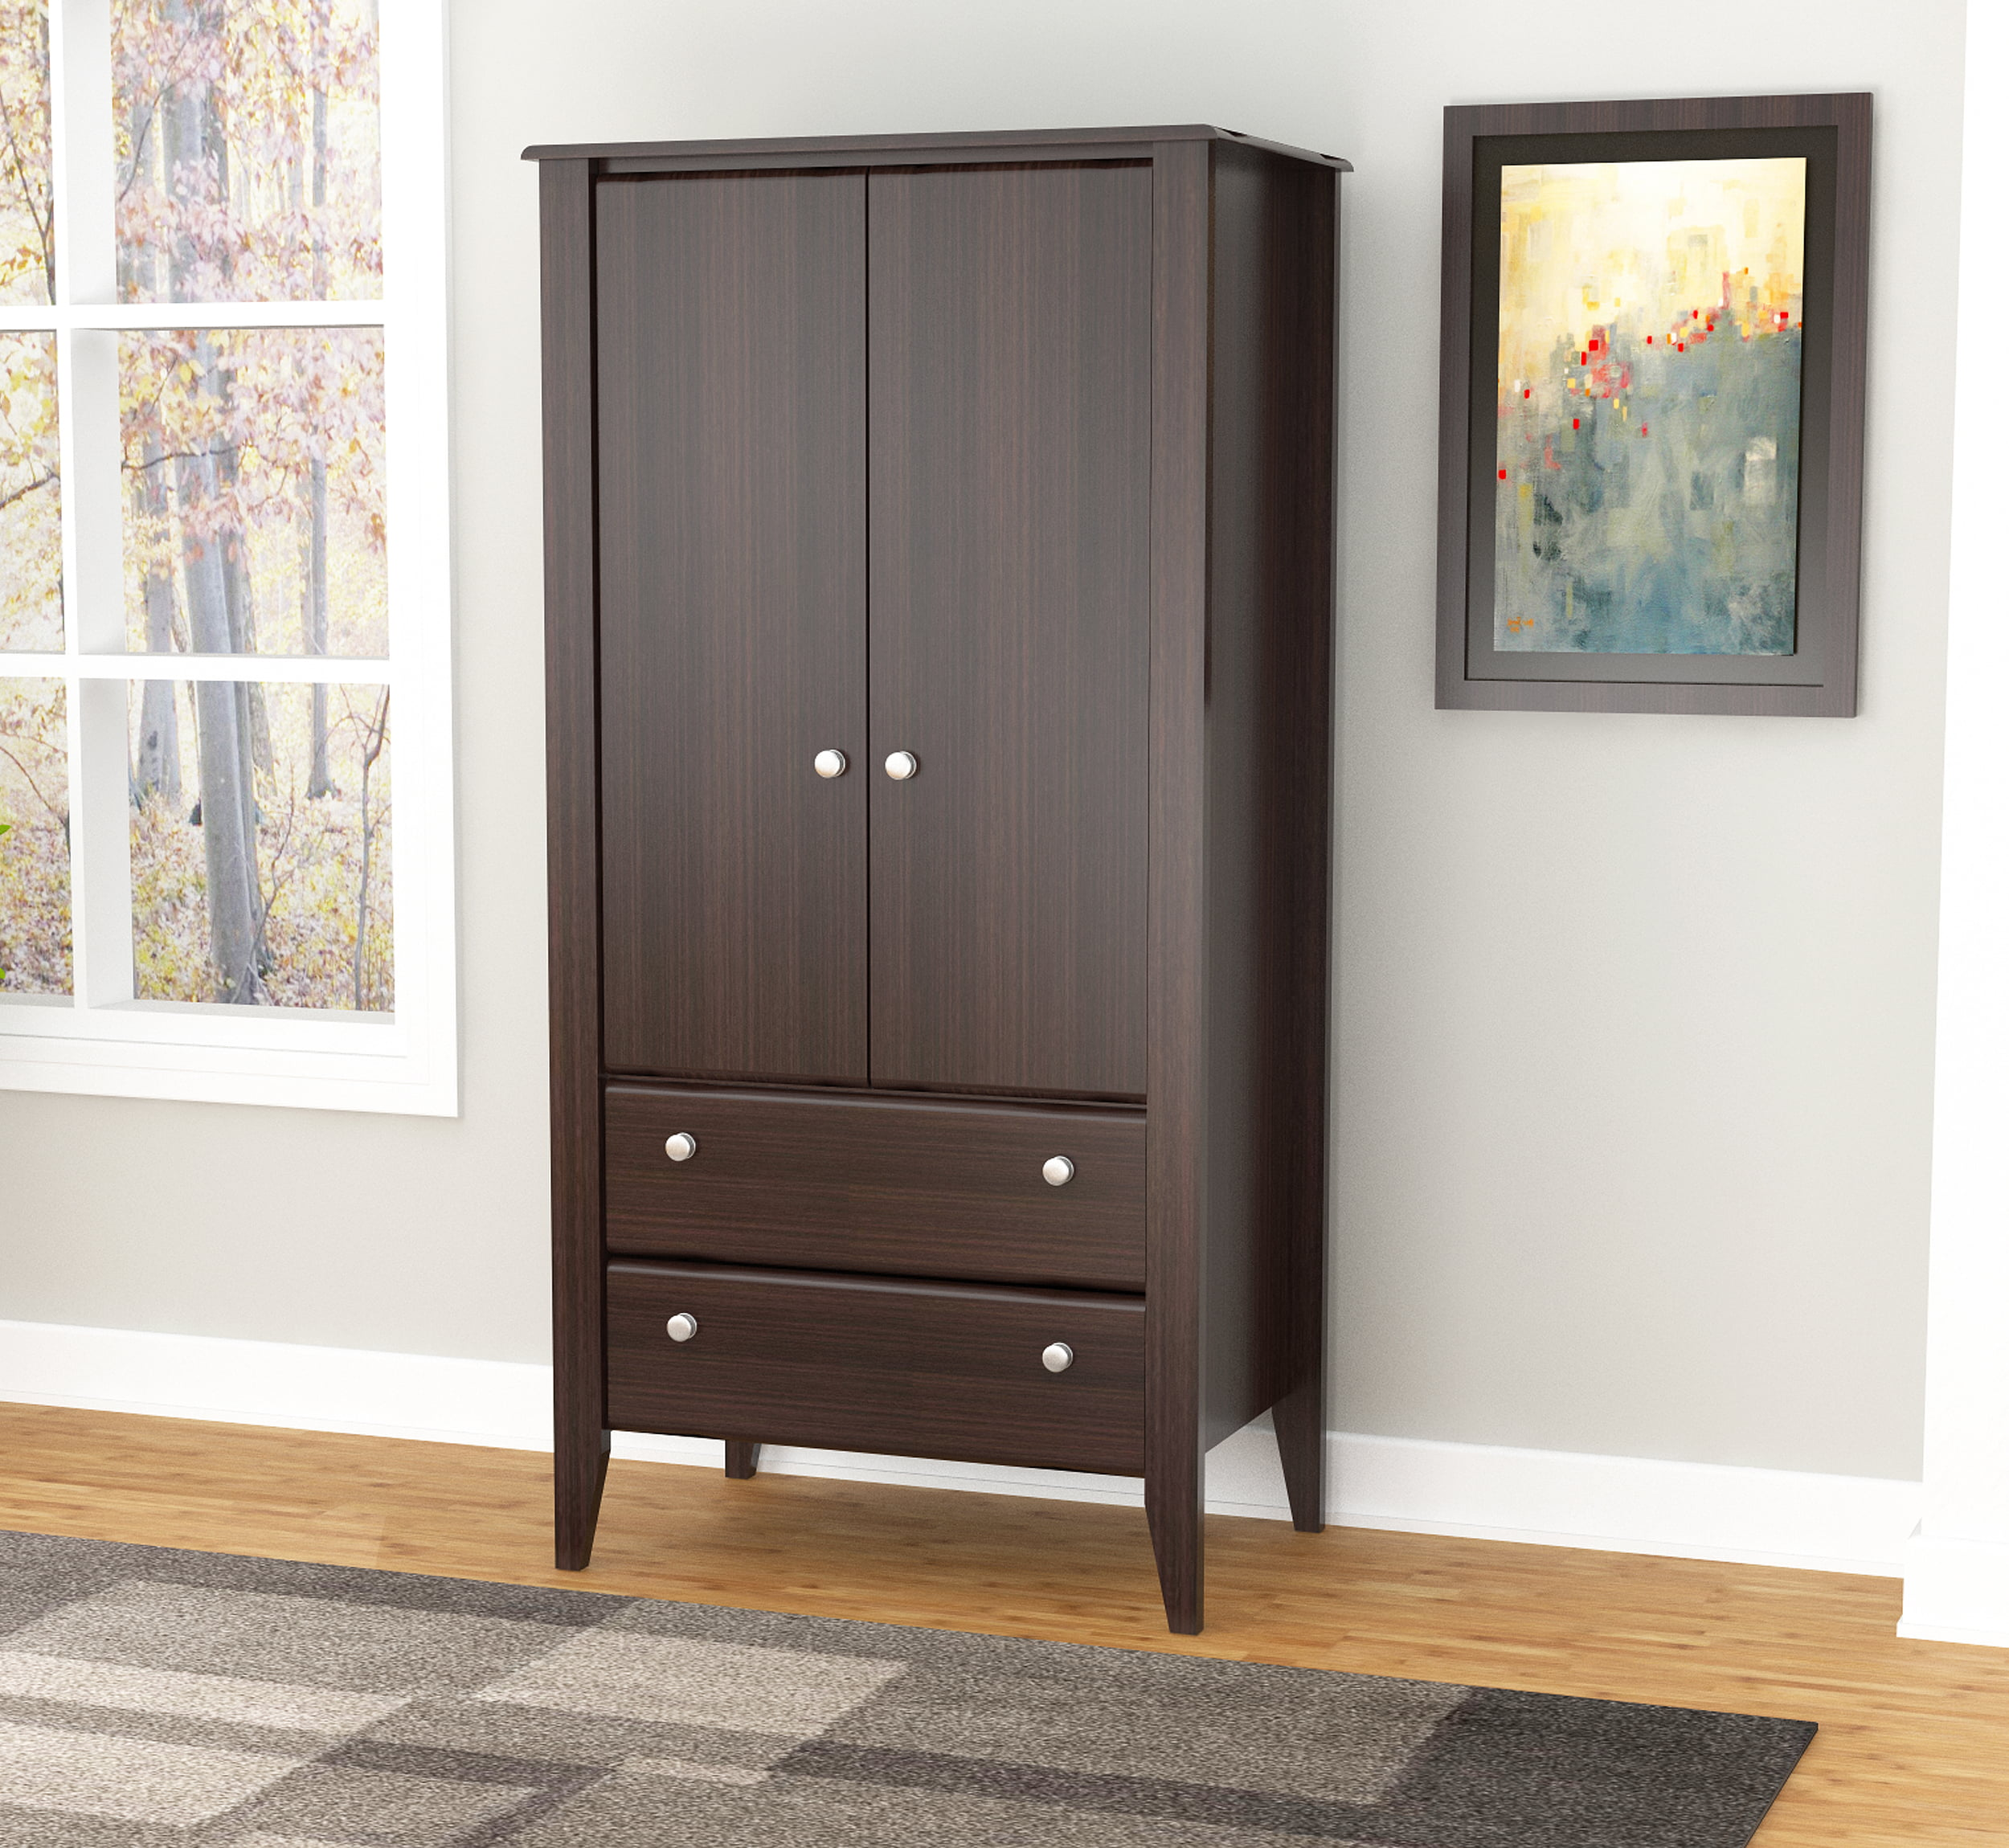 Inval Modern Espresso Two Door Two Drawer Wardrobe Armoire by Inval